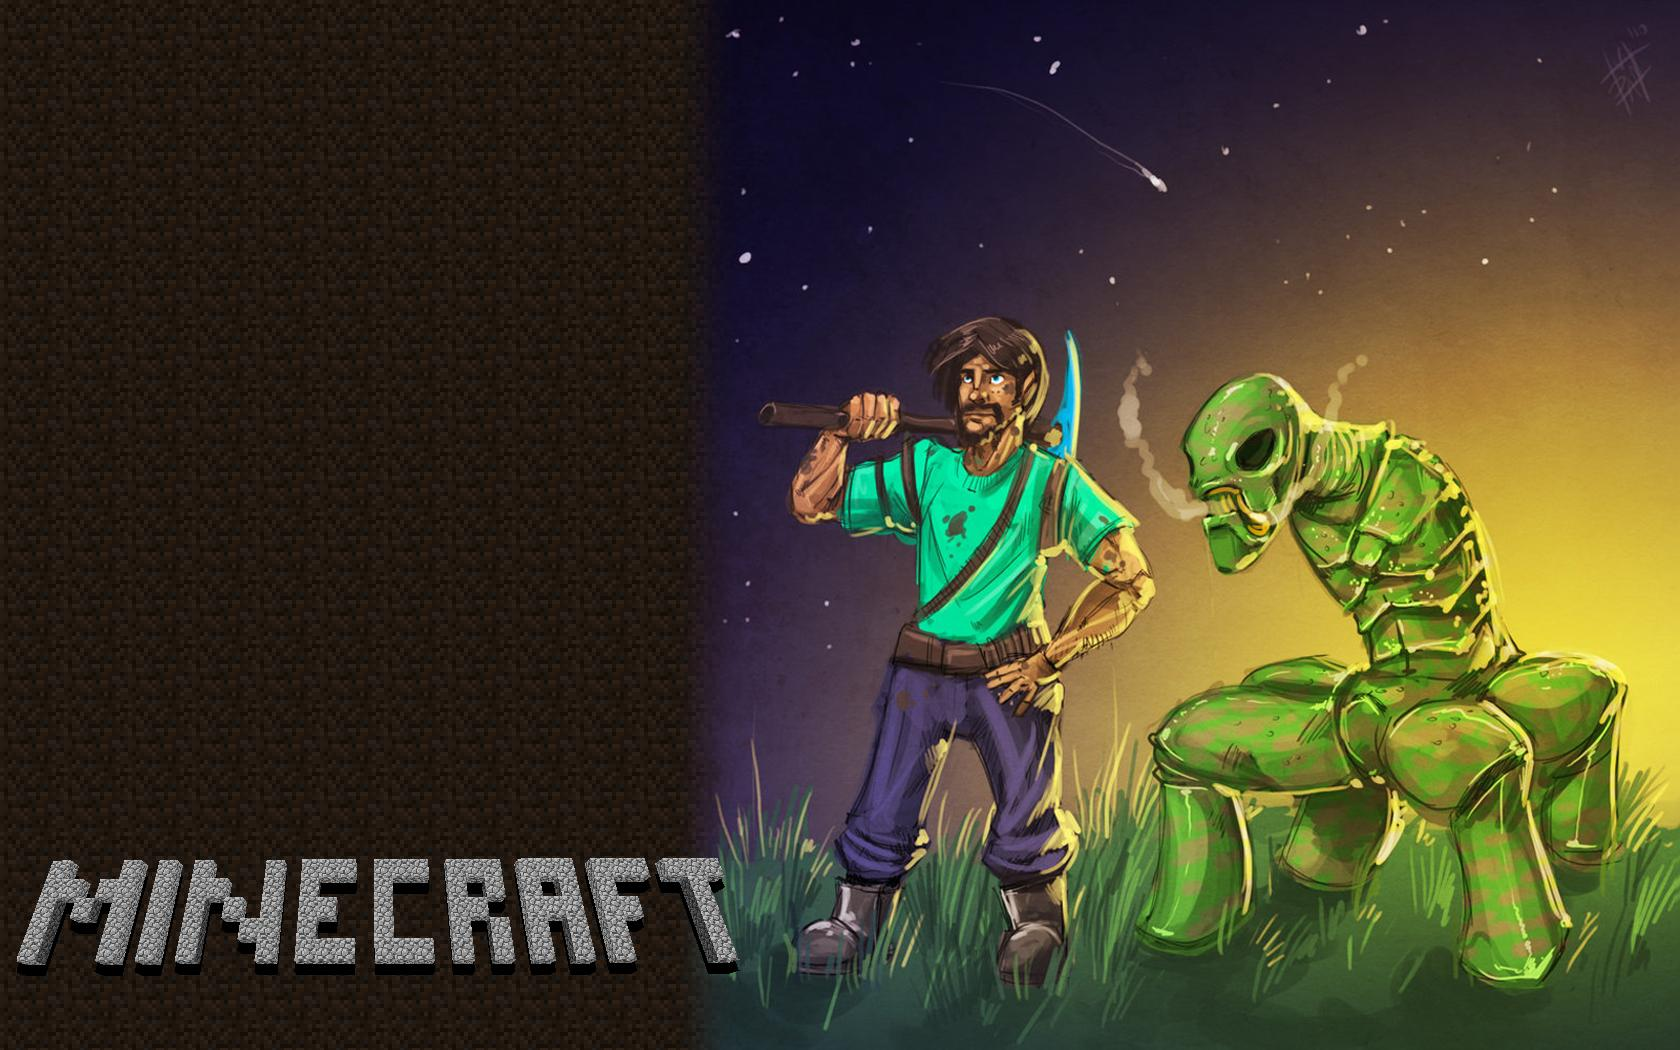 epic minecraft wallpapers hd Bestpicture1org 1680x1050